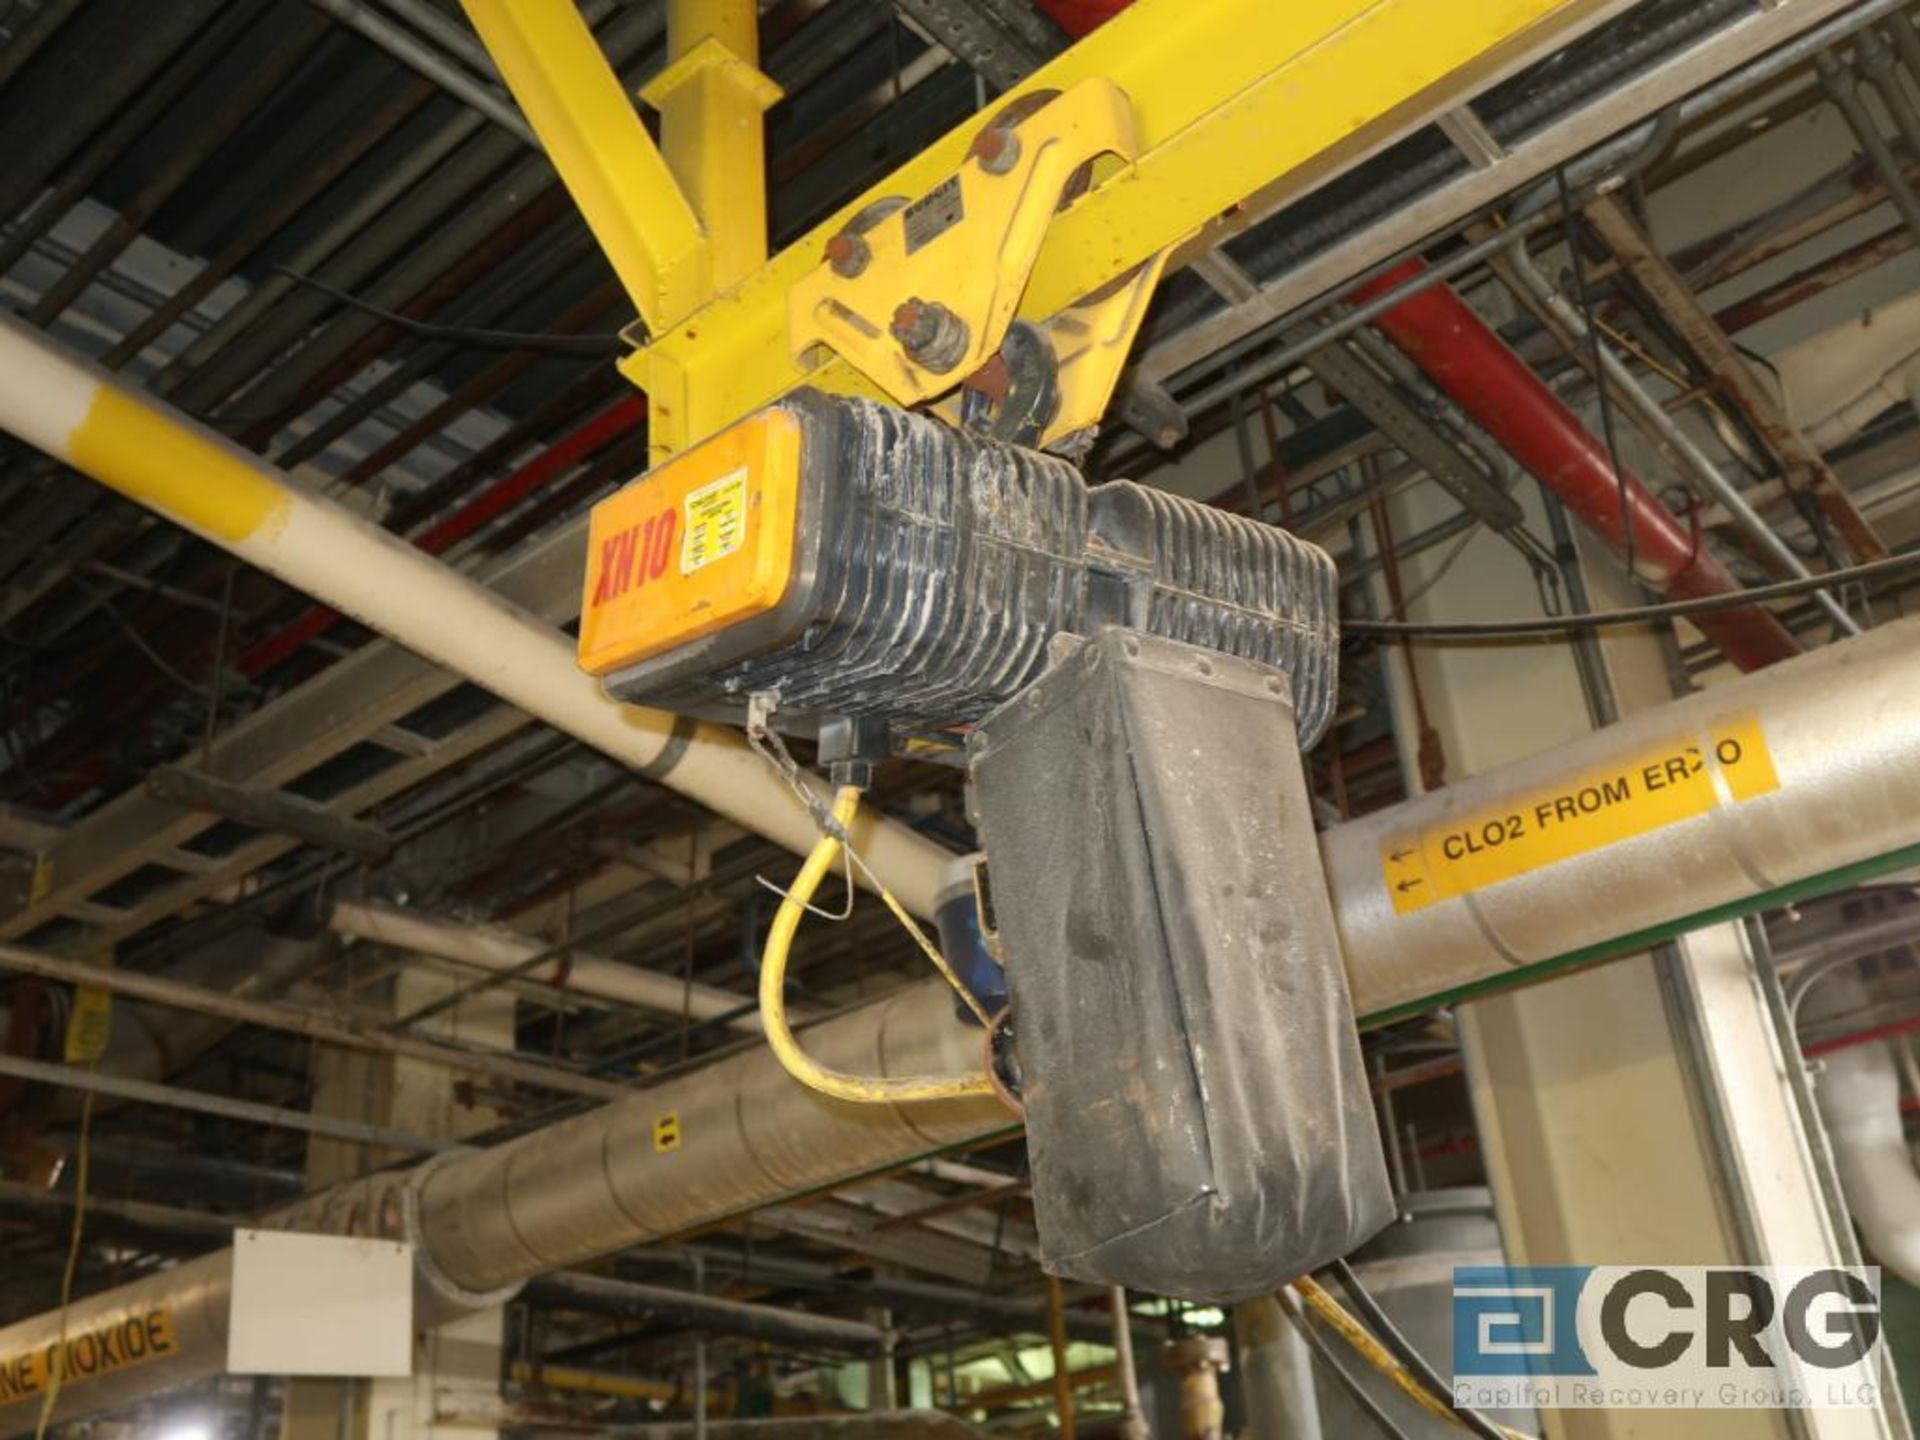 Konecranes XN25 electric hoist, 3 ton cap., hoist only, no beam-LATE DELIVERY (Located on Level - Image 8 of 12